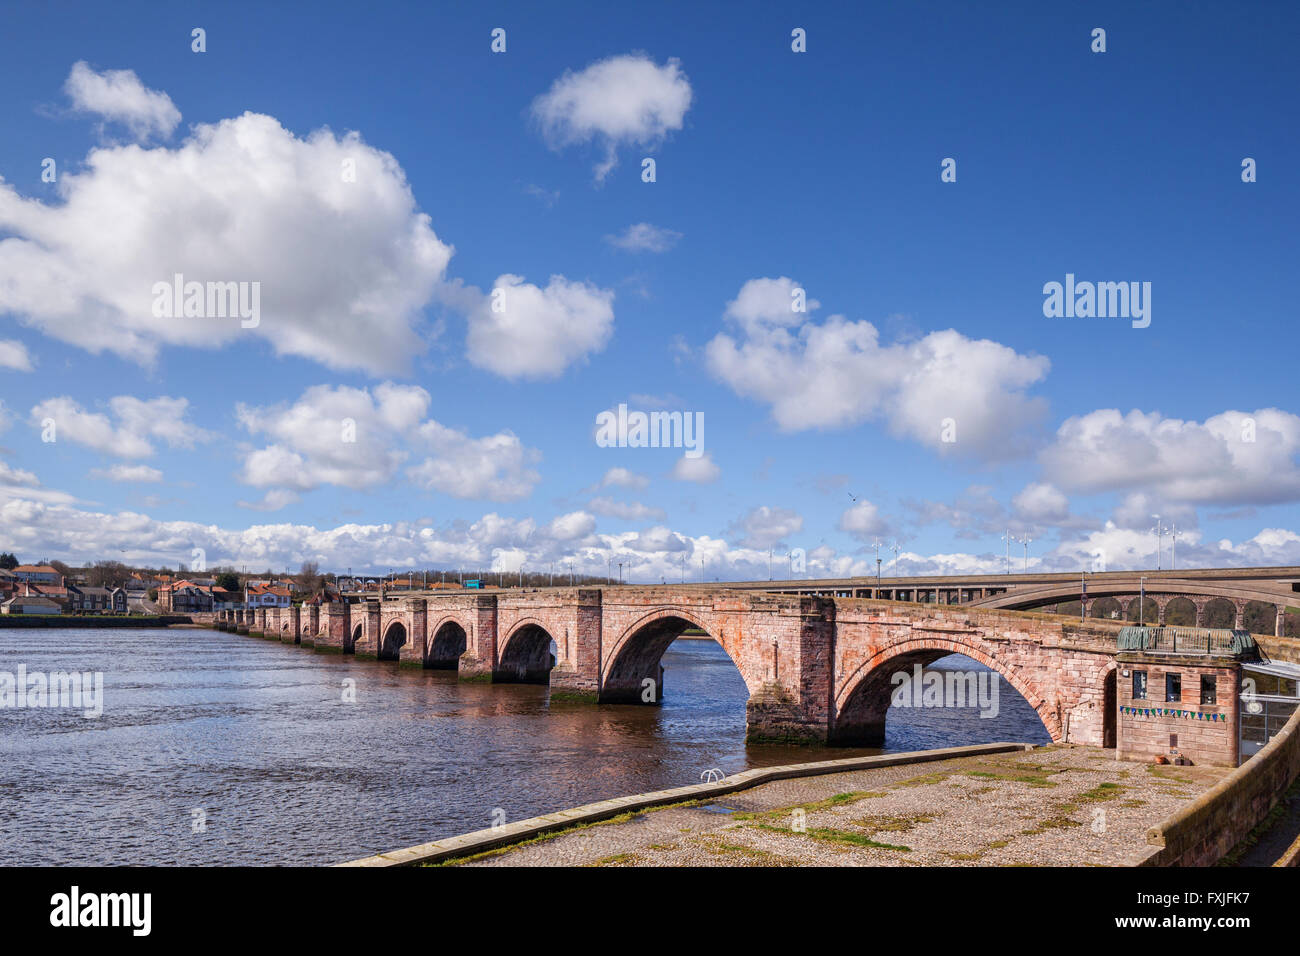 Berwick Old Bridge on the River Tweed, and beyond it the Royal Tweed Bridge, Berwick-upon-Tweed, Northumberland, - Stock Image